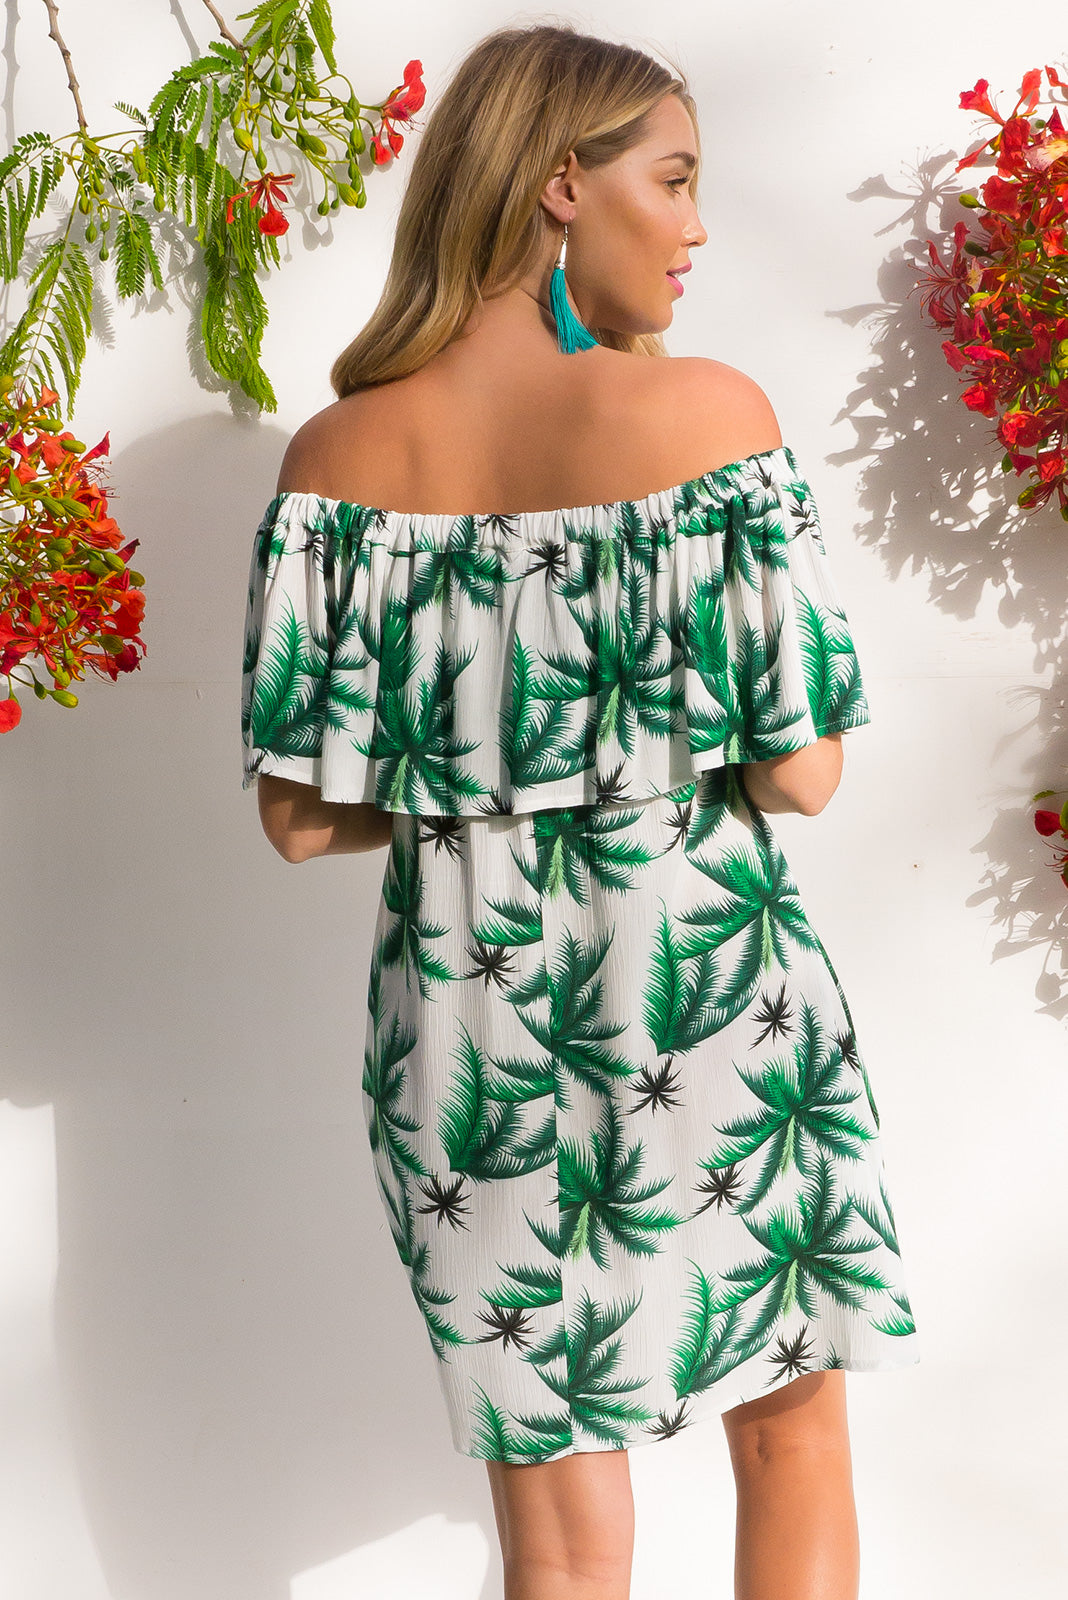 Macarena off the shoulder mini dress in a tropical green palms print on soft crinkled rayon